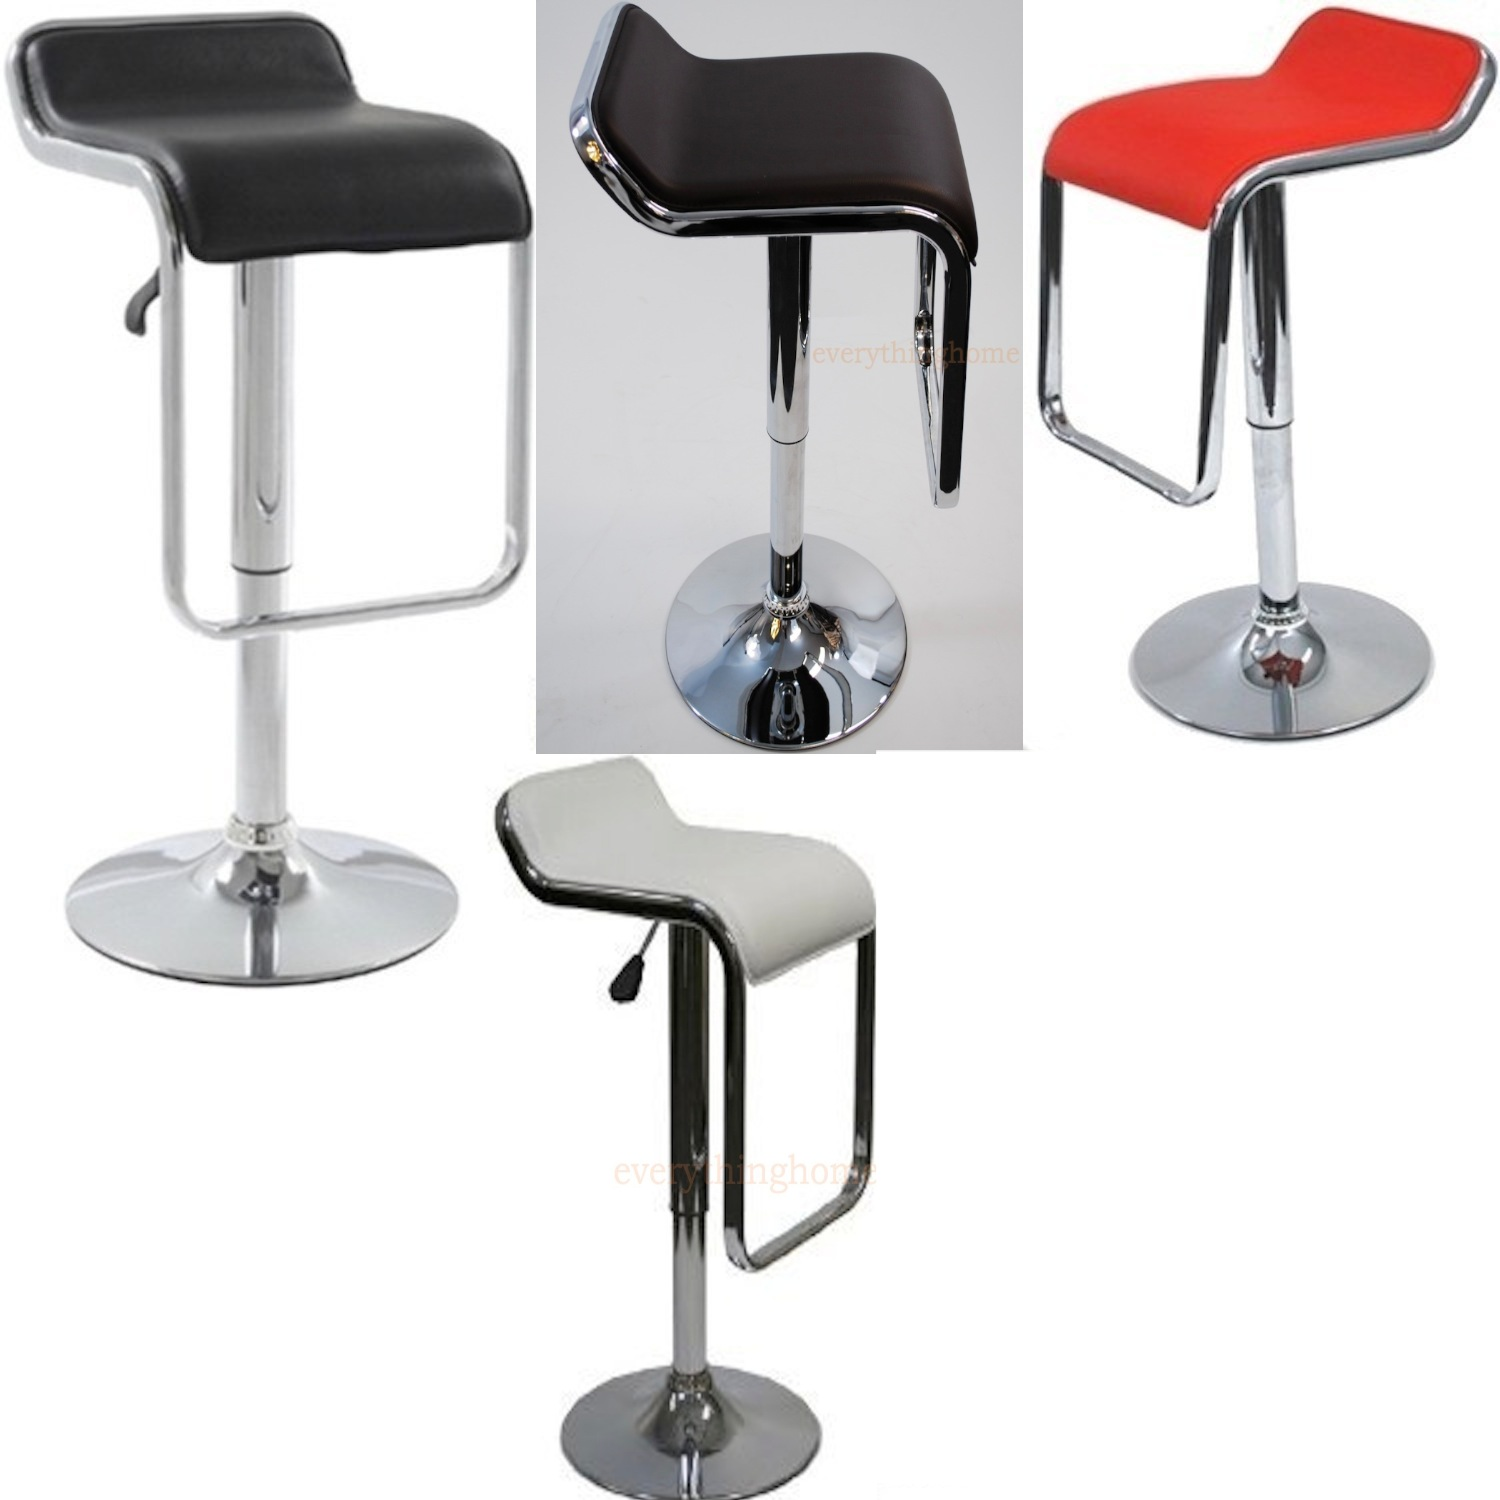 Pleasant Details About Lem Adjustable Bar Stool Swivel Modern Black Brown White Or Red Steel Base New Pdpeps Interior Chair Design Pdpepsorg